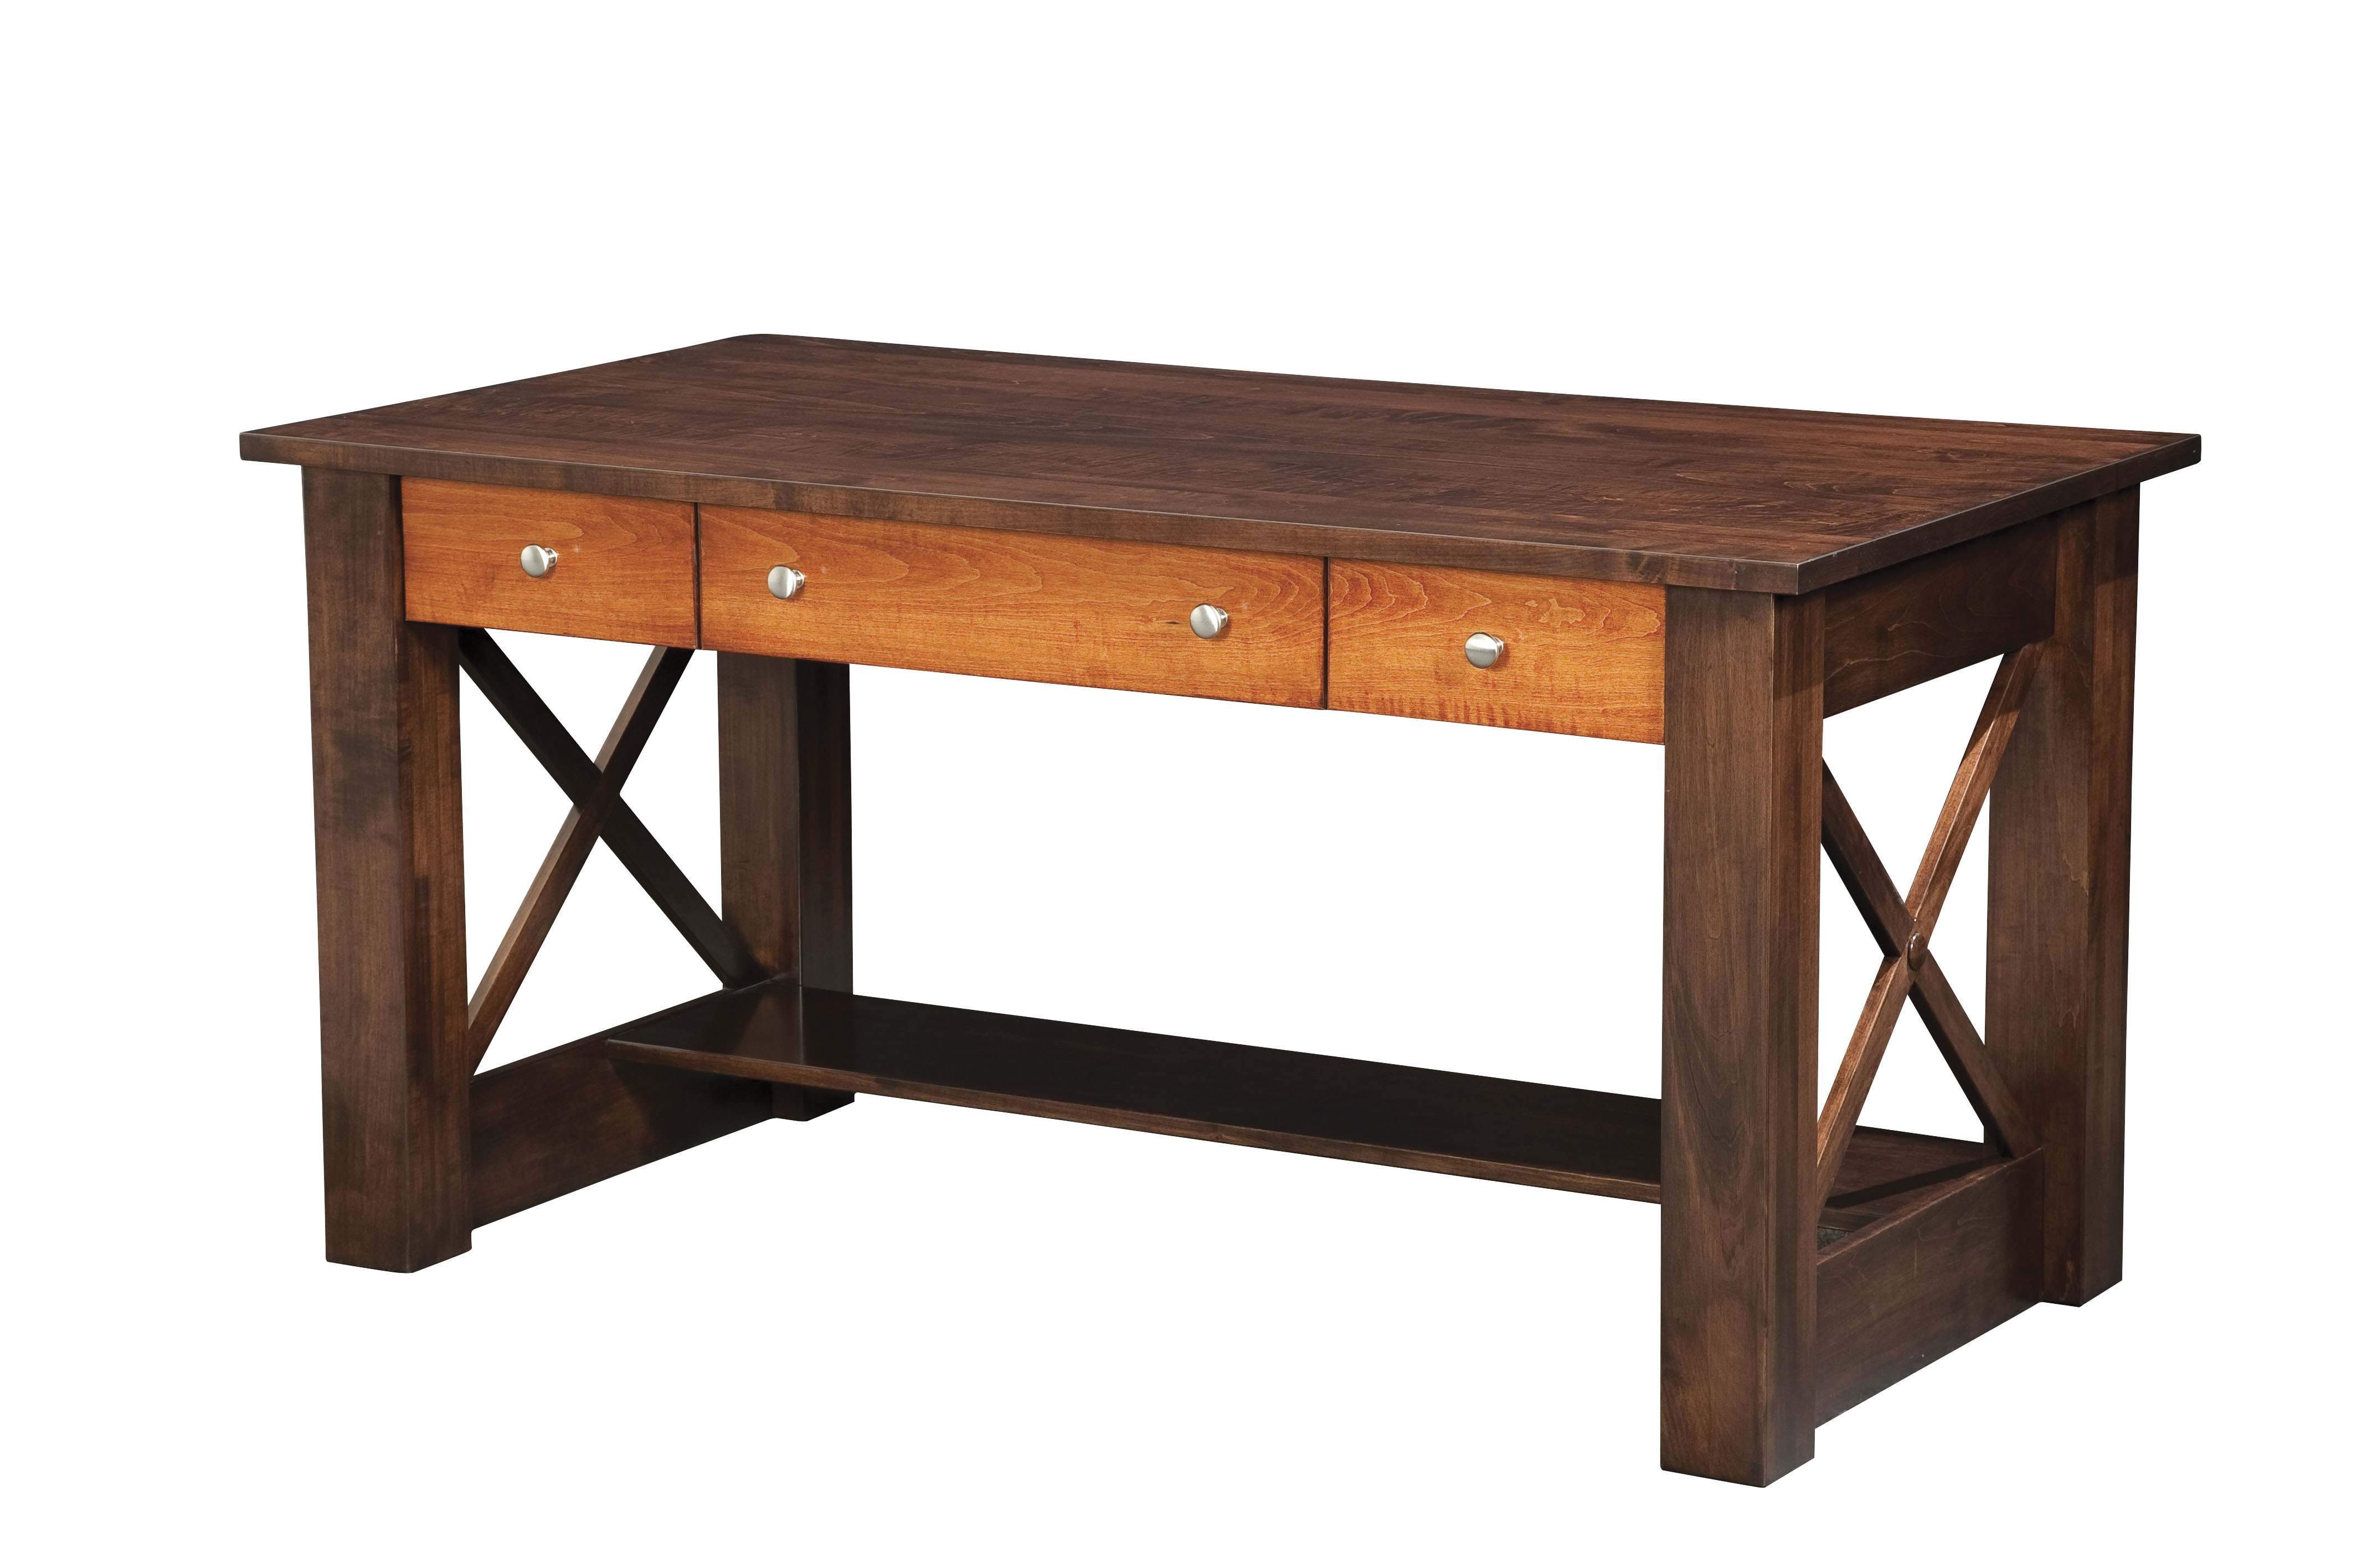 Desks (Page 1) - Amish Furniture Gallery in Lockport, IL